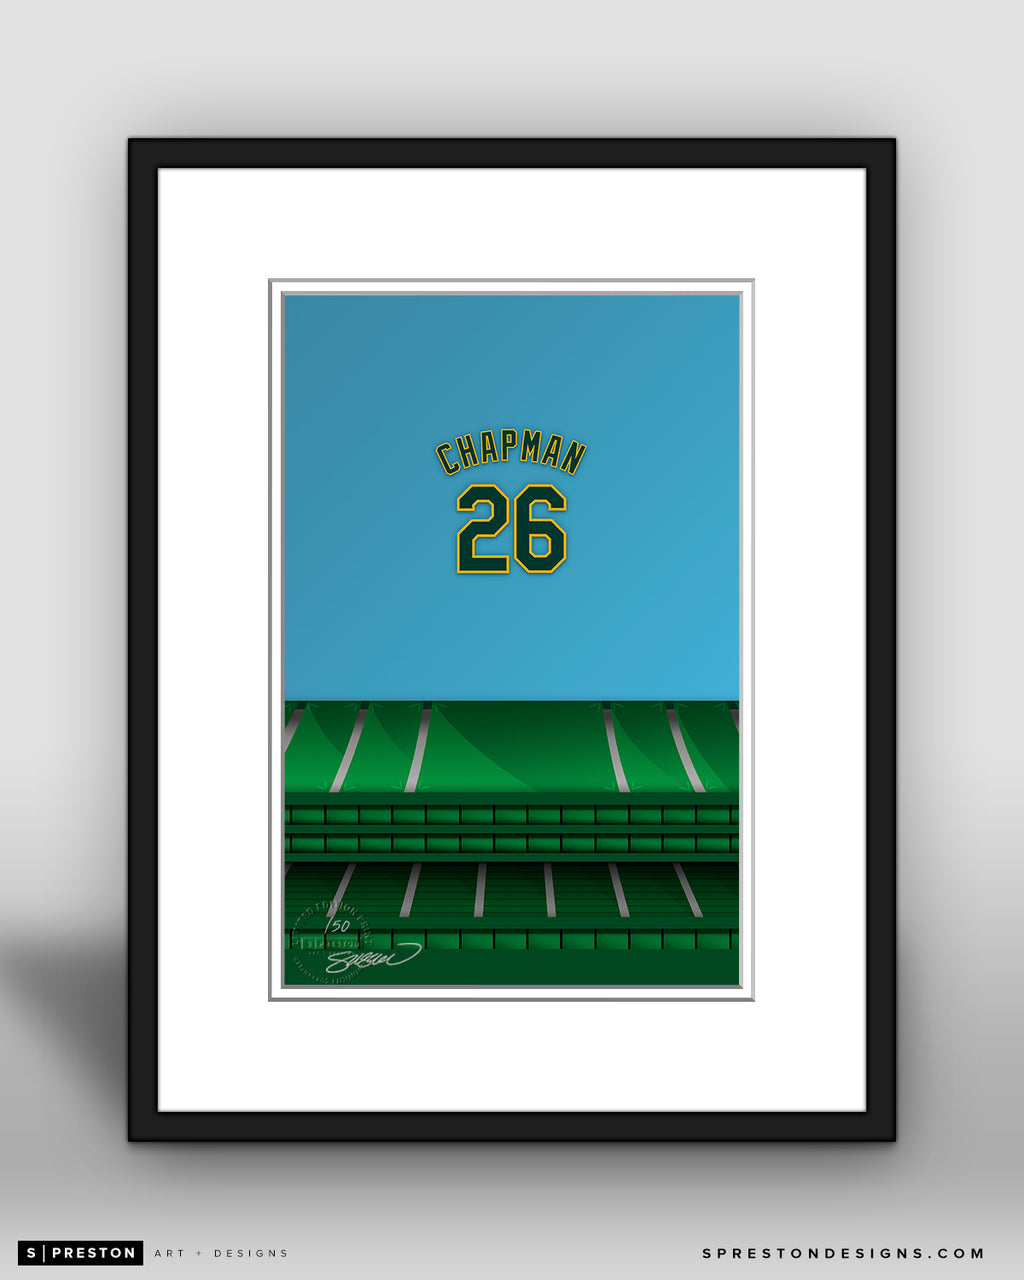 Minimalist Oakland Coliseum - Player Series - Matt Chapman